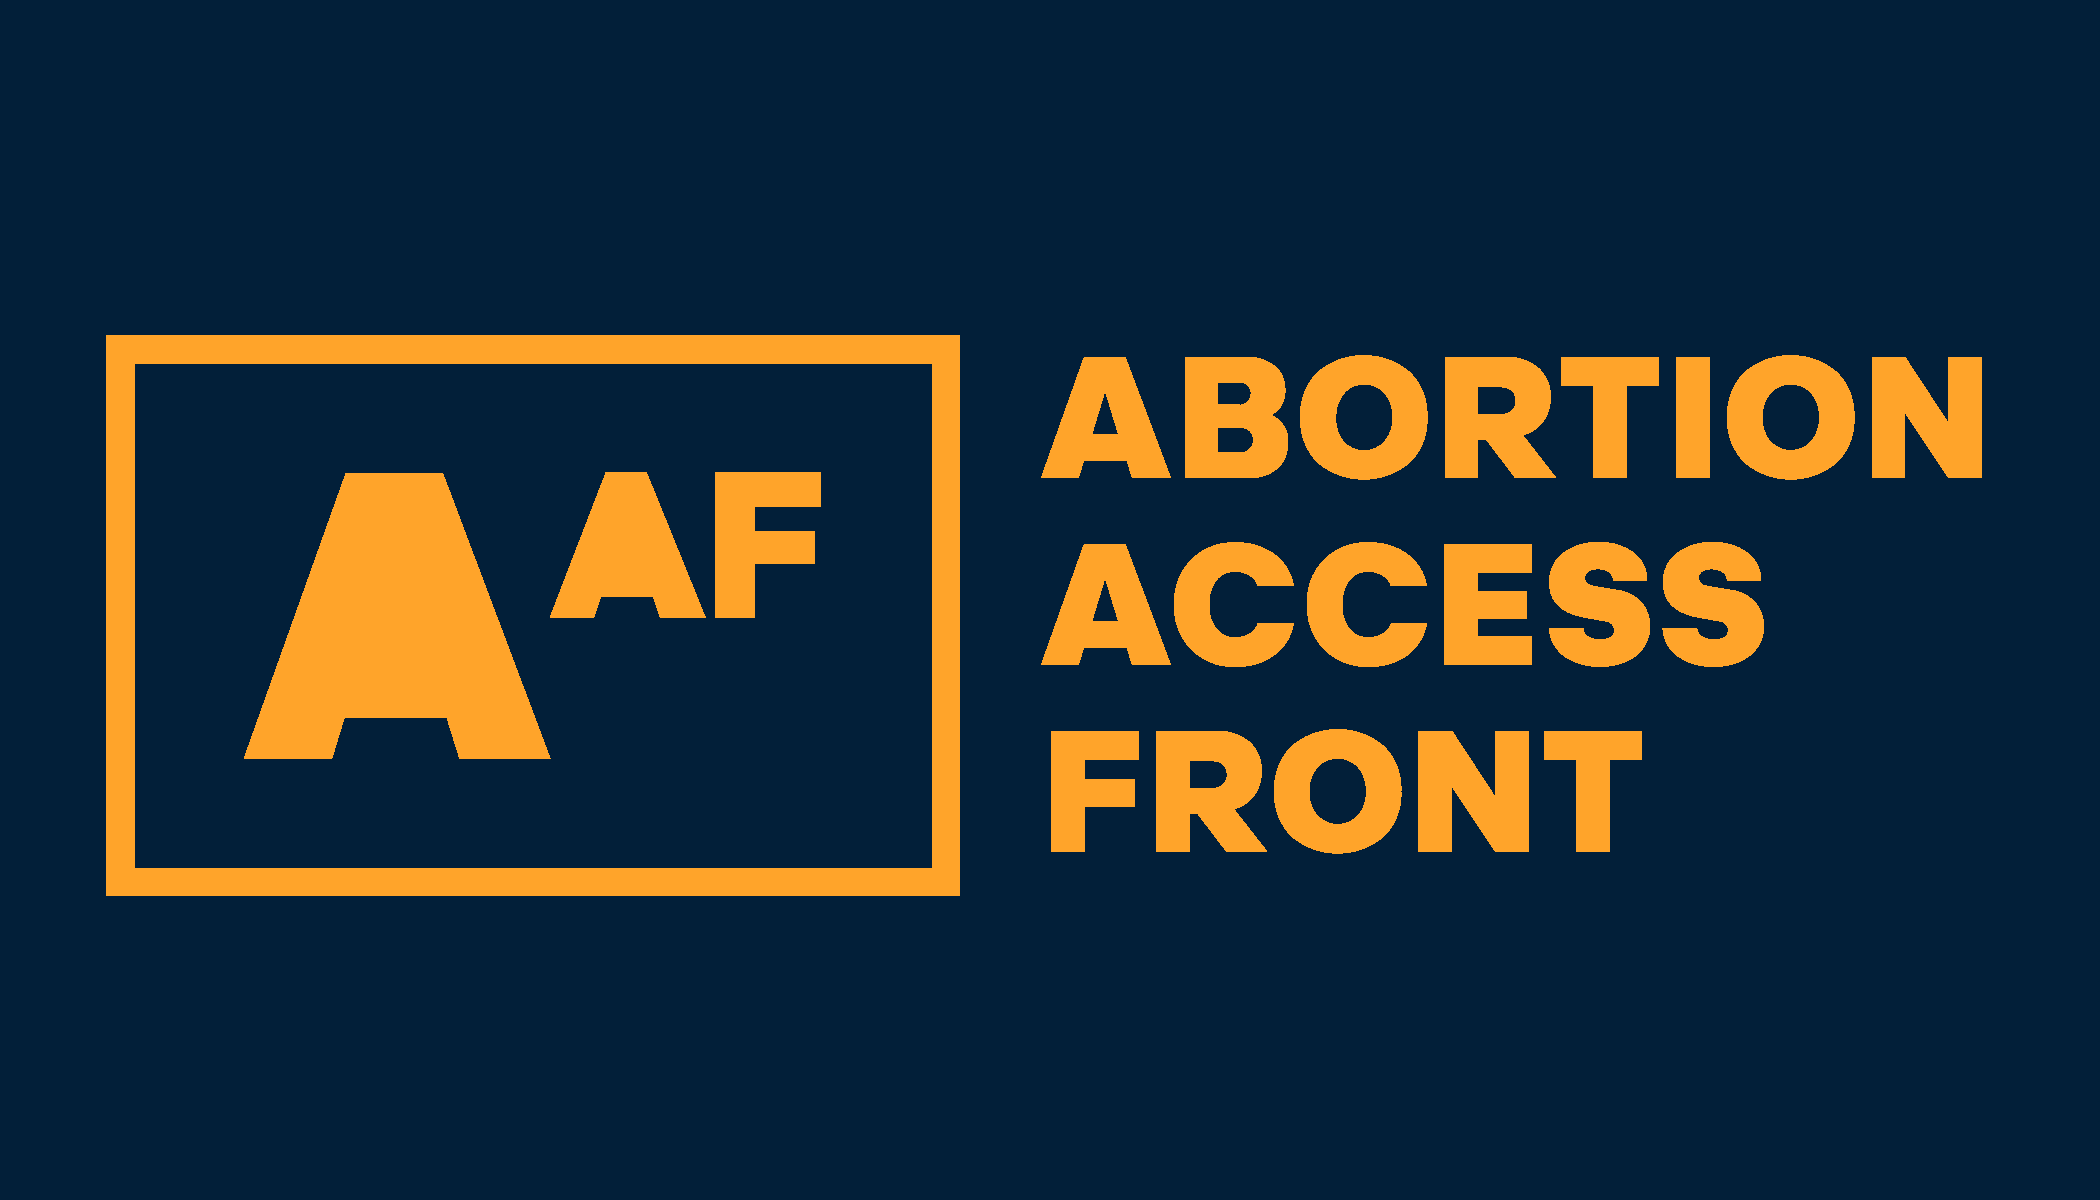 Abortion Access Front